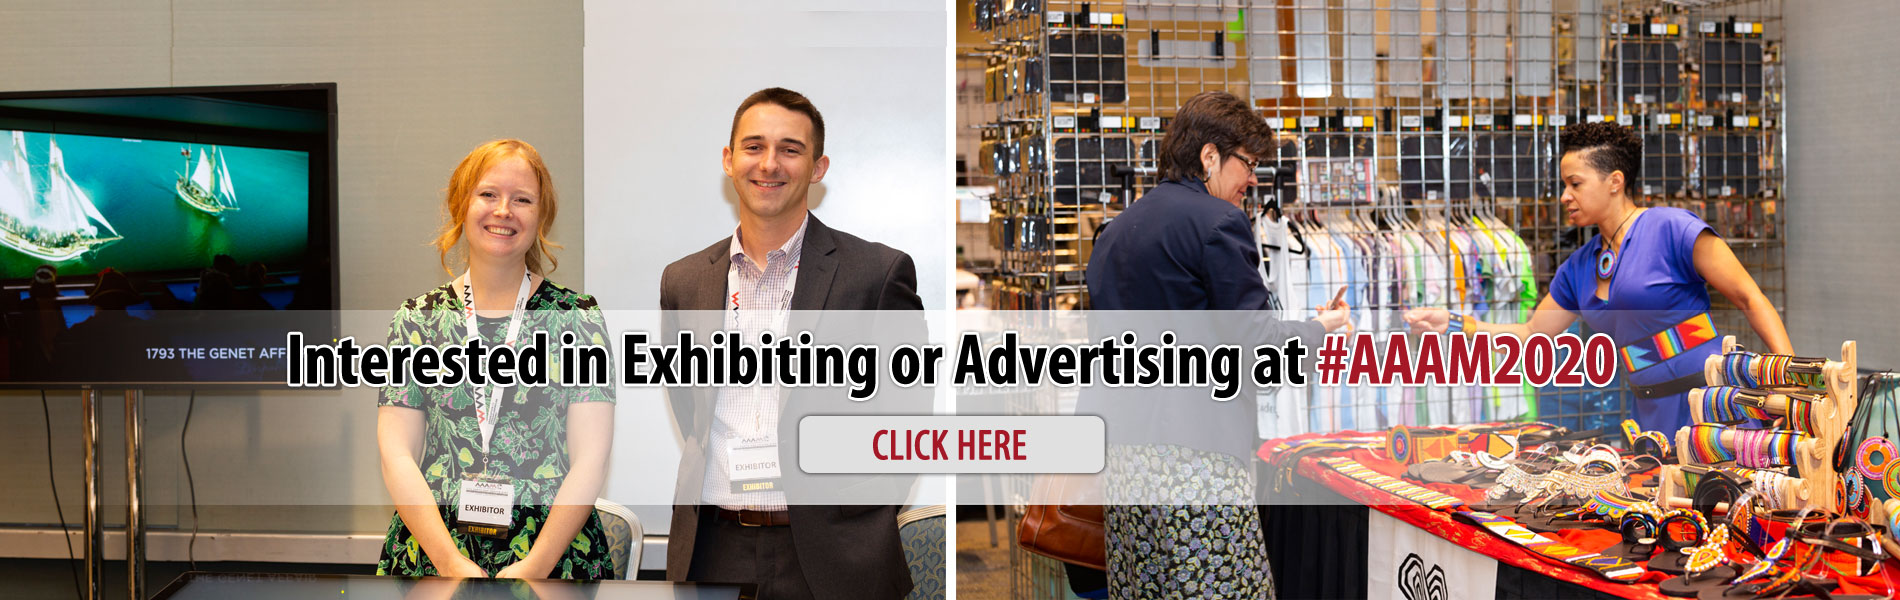 Interested in Exhibiting at AAAM 2020